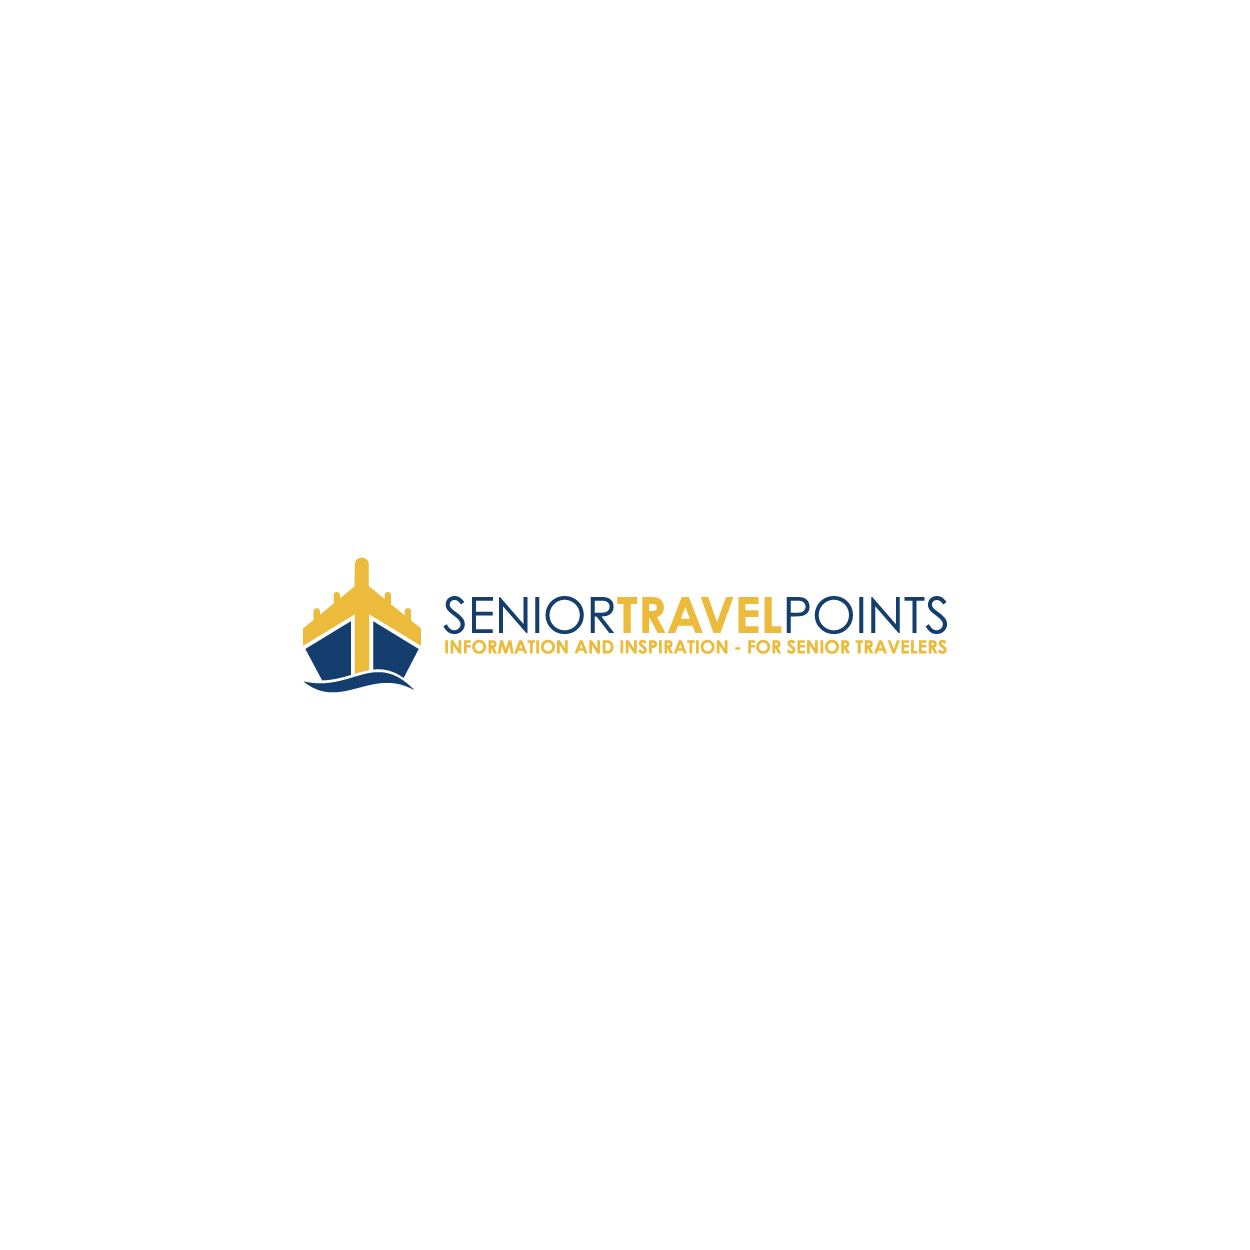 Create an awesome logo for Senior Travel Points!